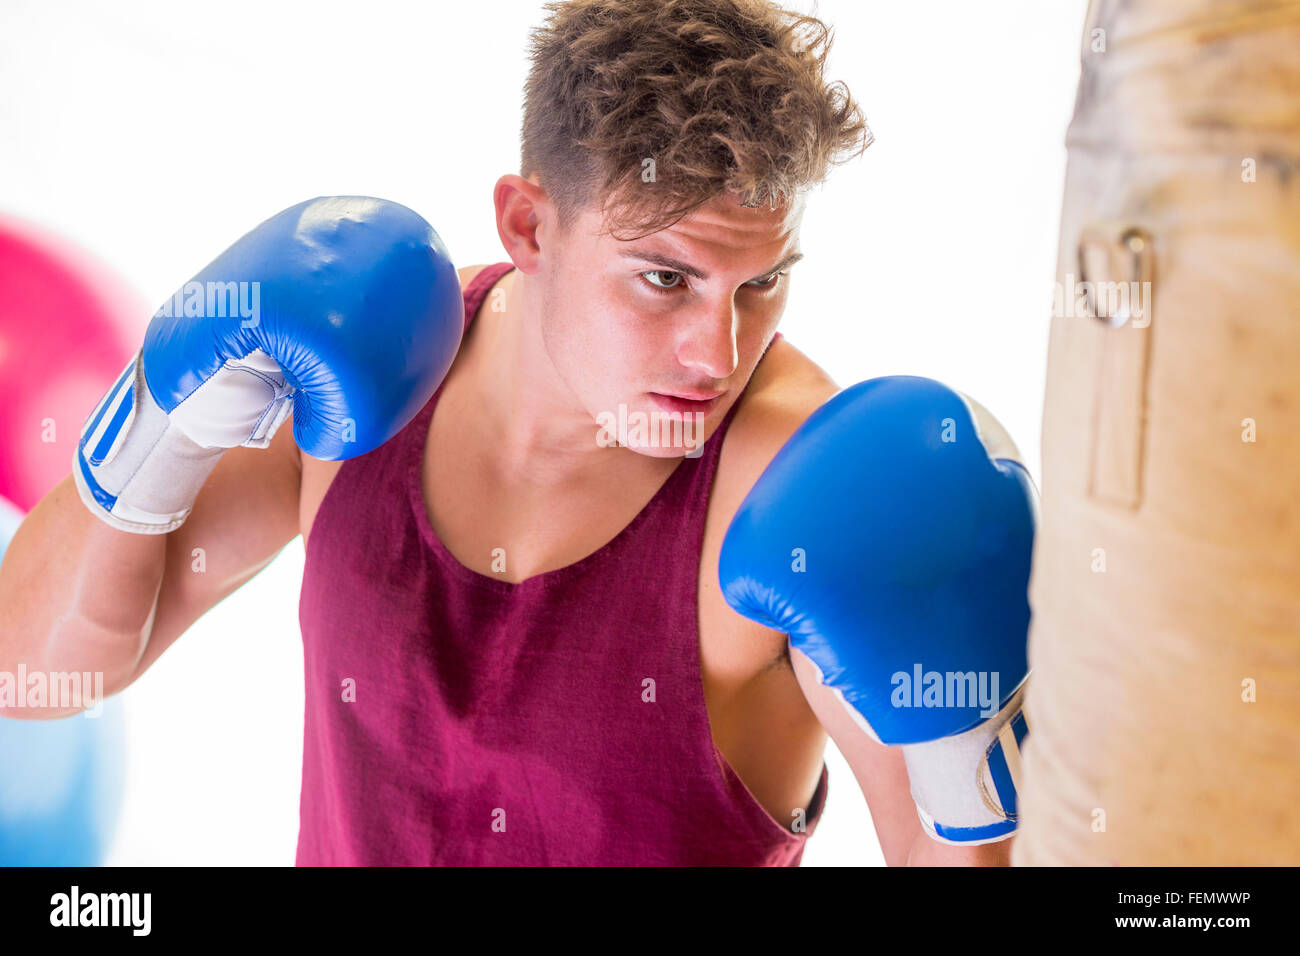 Attractive young man in boxing position hitting a punching bag - Stock Image